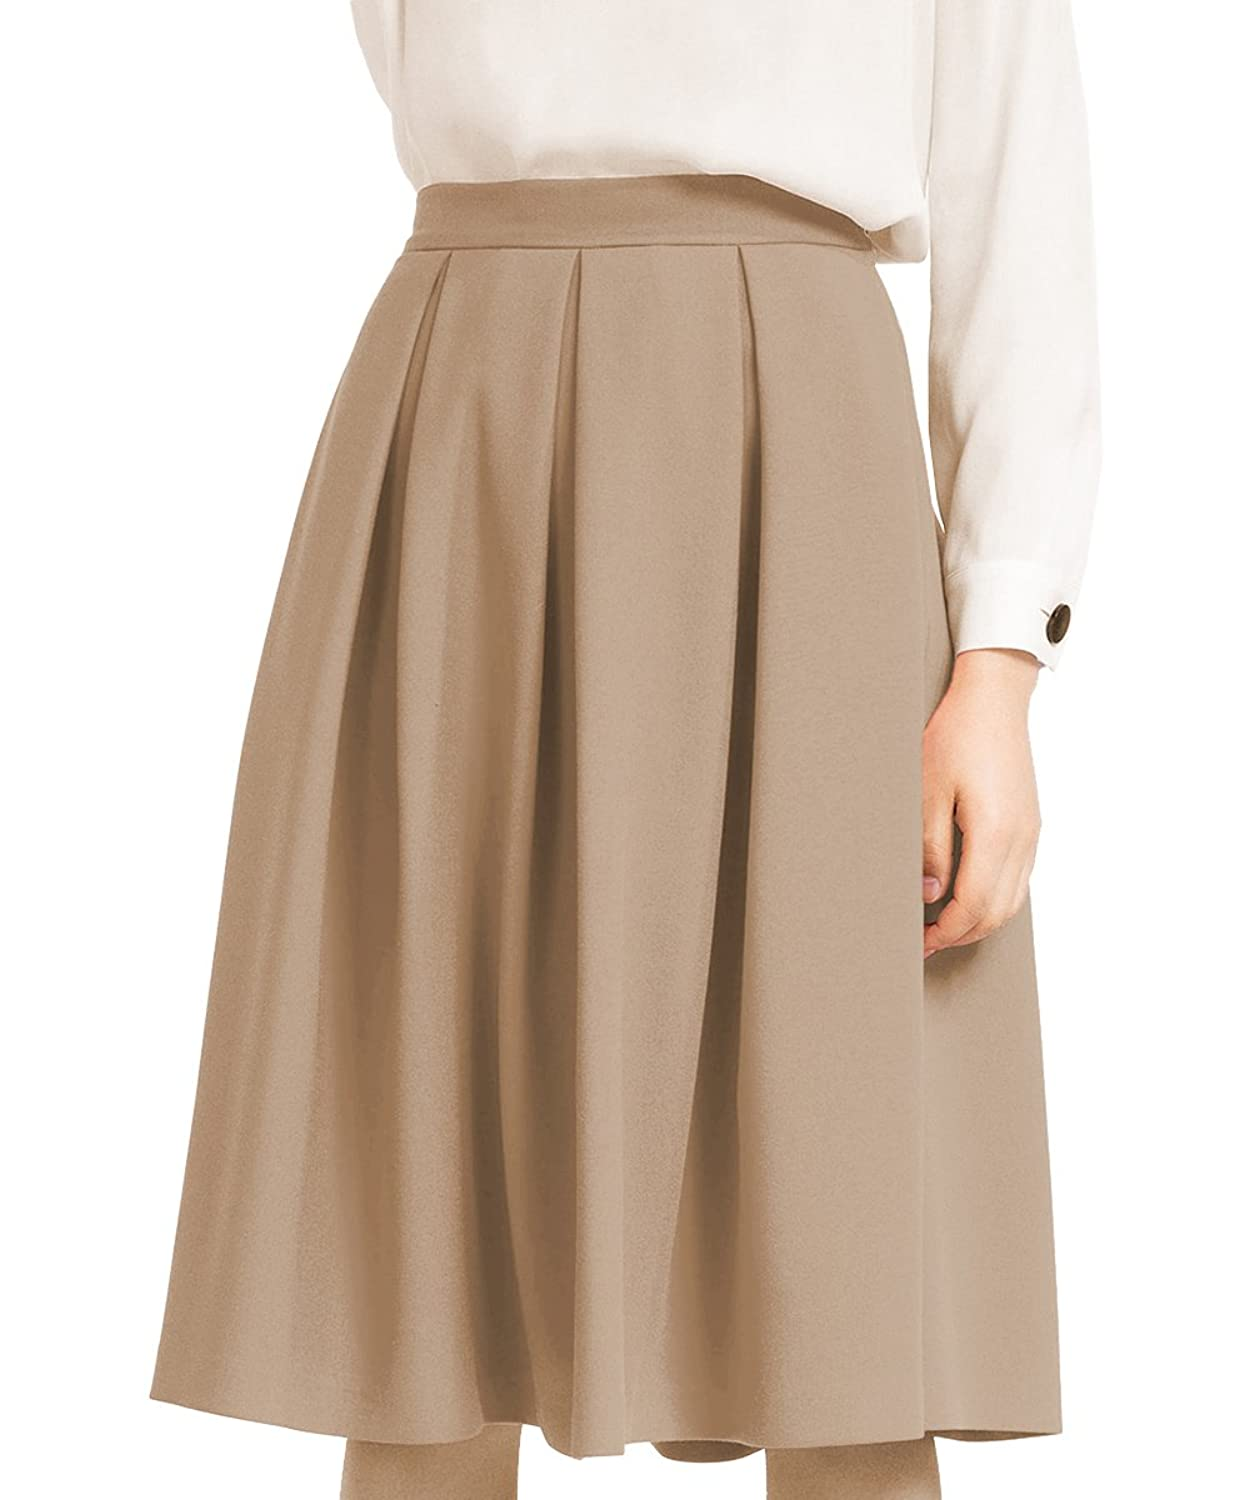 1940s Style Skirts- Vintage High Waisted Skirts Yige Womens High Waist Flared Skirt Pleated Midi Skirt With Pocket $19.88 AT vintagedancer.com